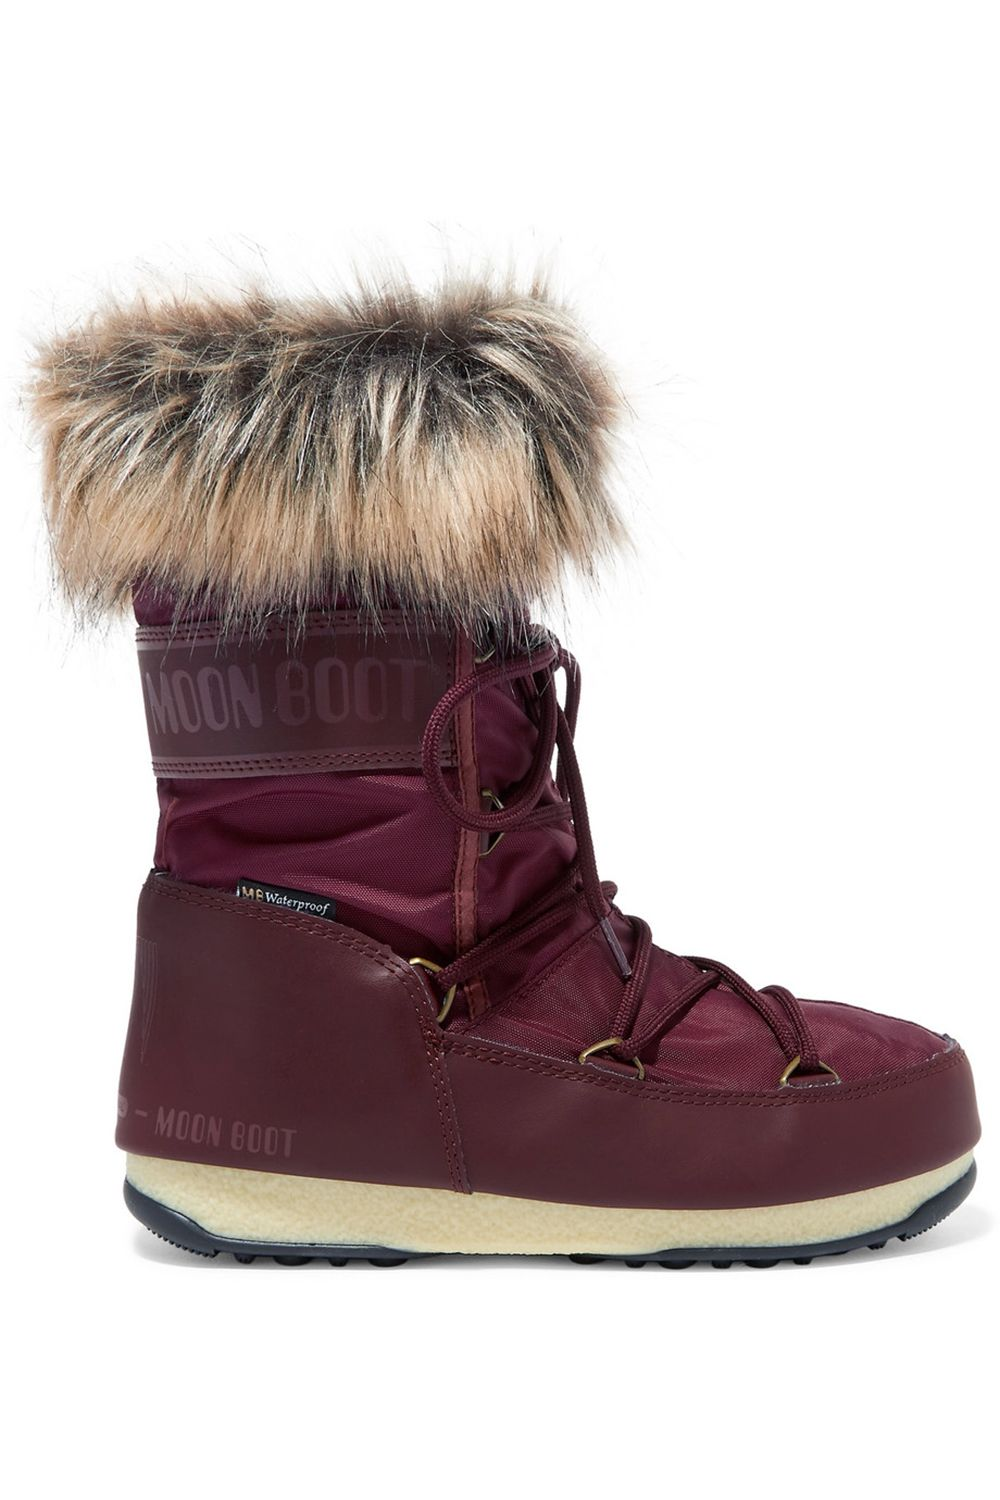 Women S Ski Wear The Best And Most Stylish Snow Ready Clothes For